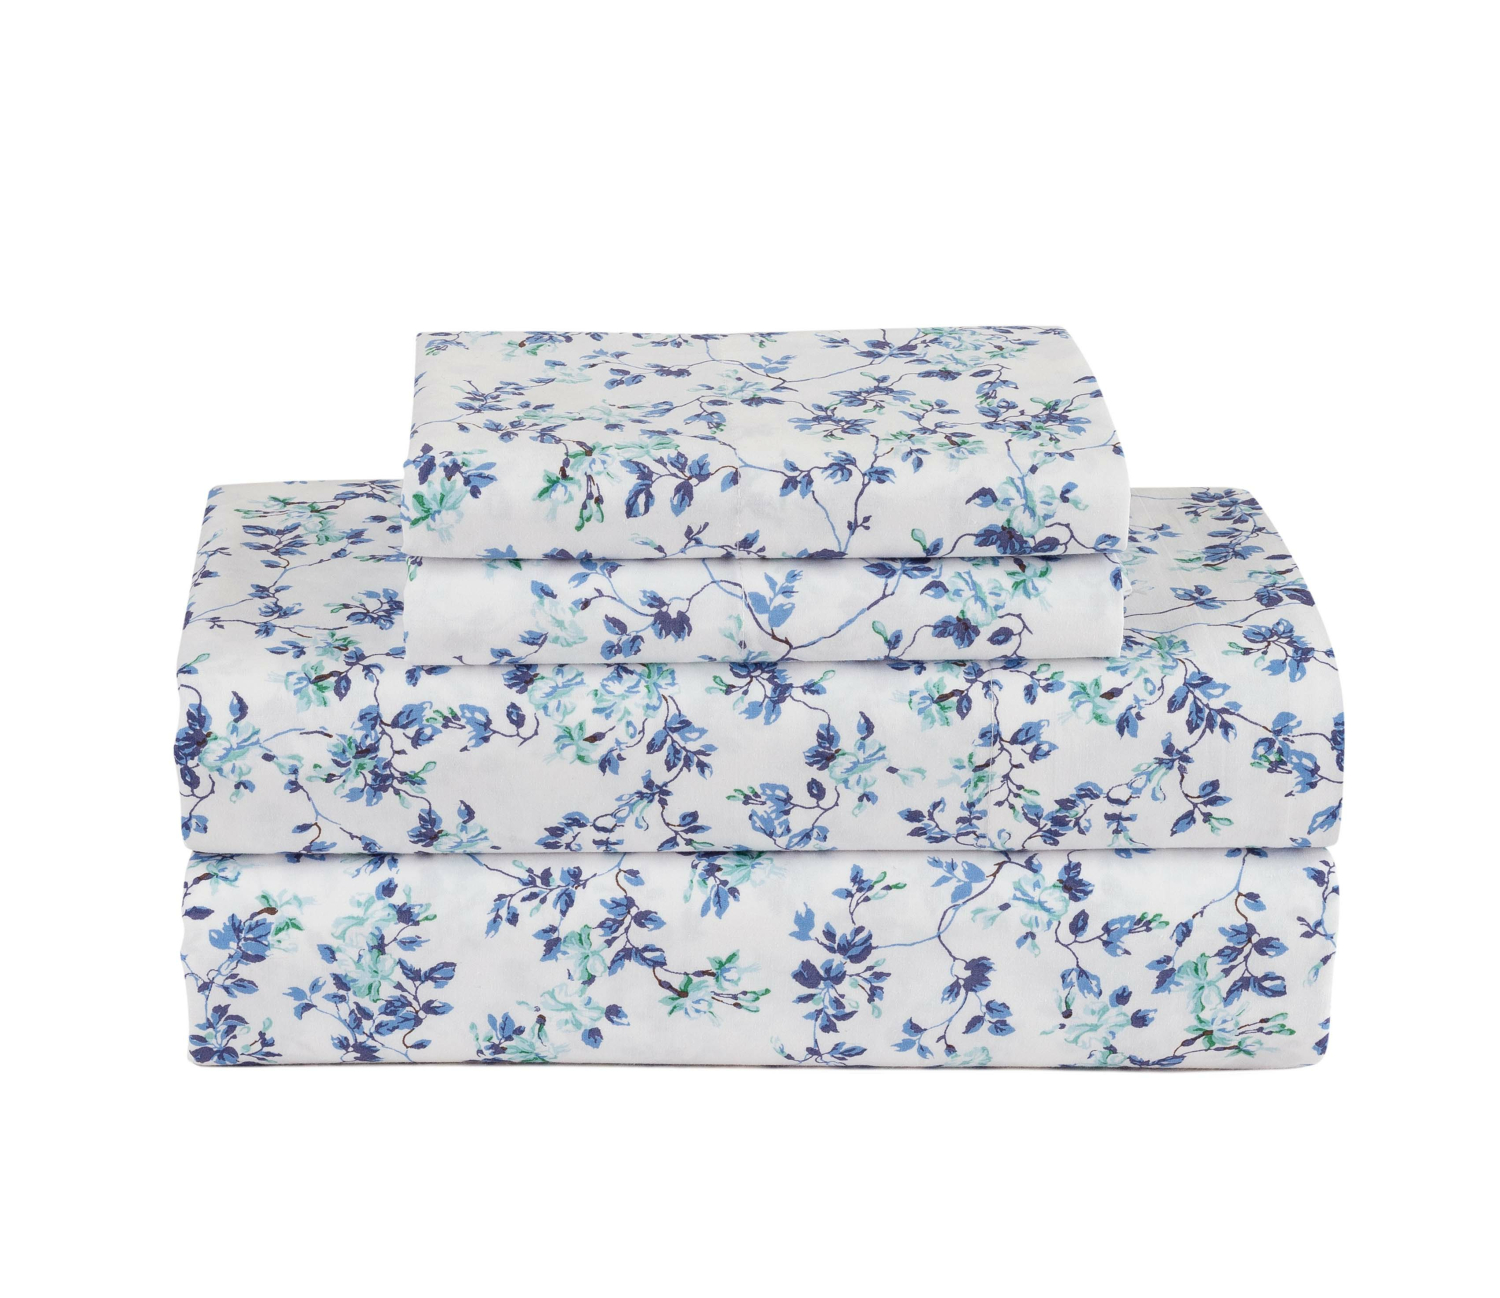 100% Cotton Percale 4Pc Floral Garden Printed Sheet Set by ML Home